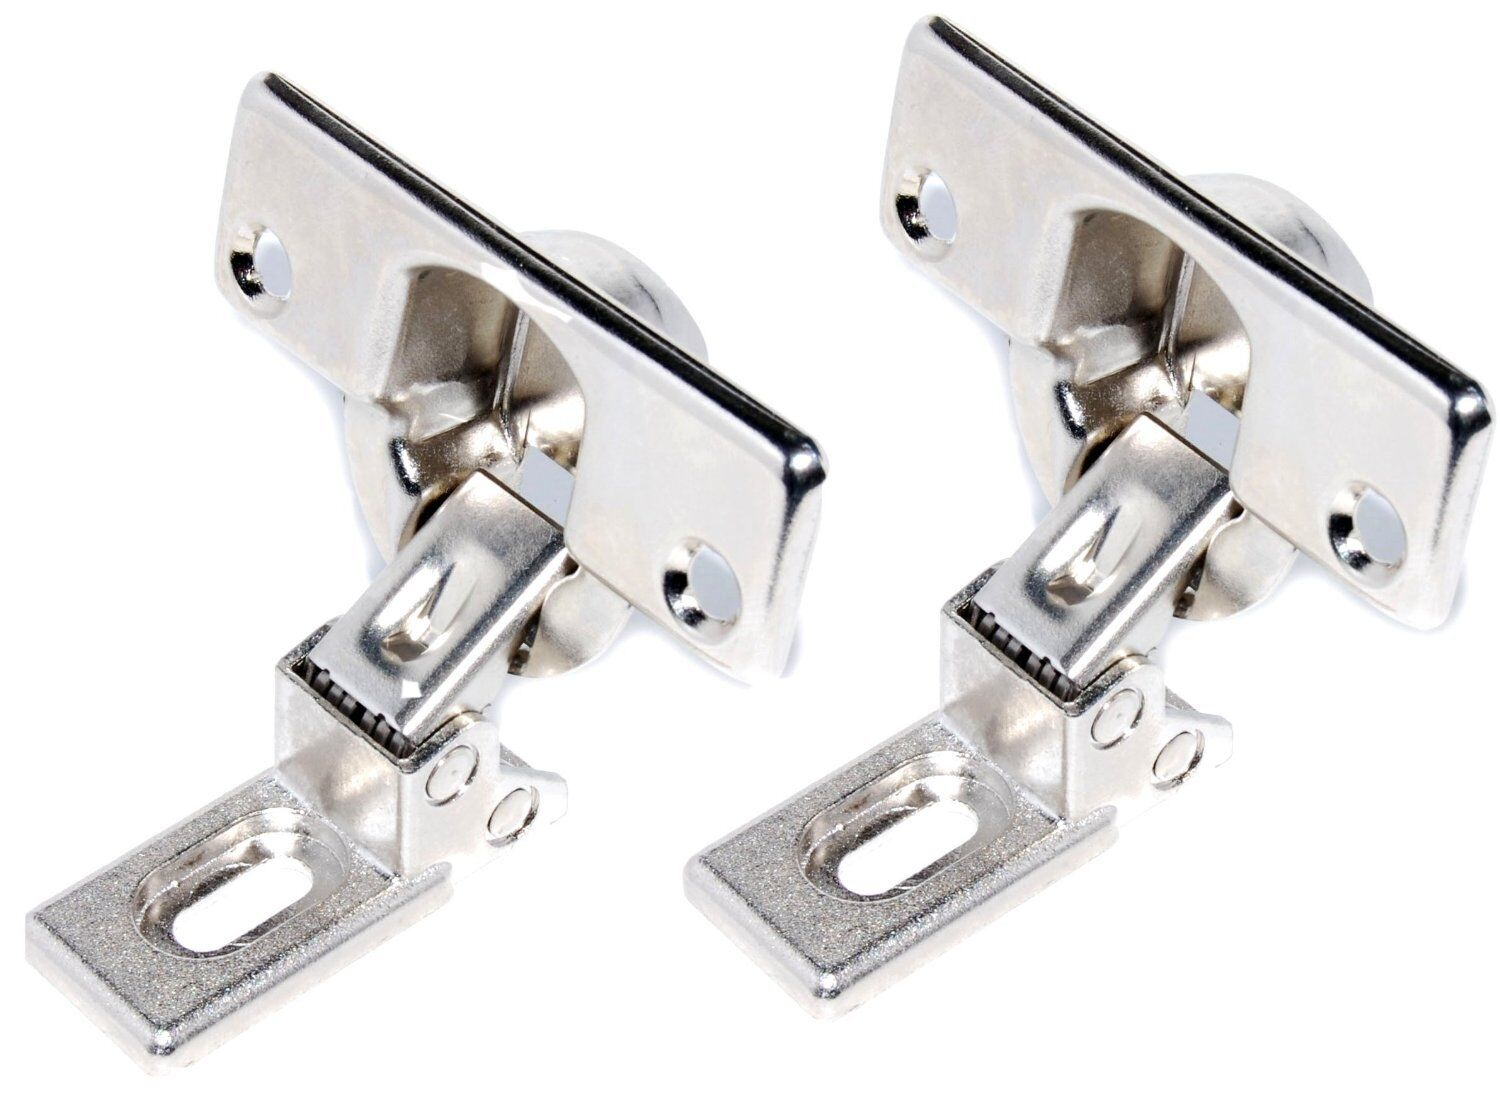 Integrated Washing Machine Hinges